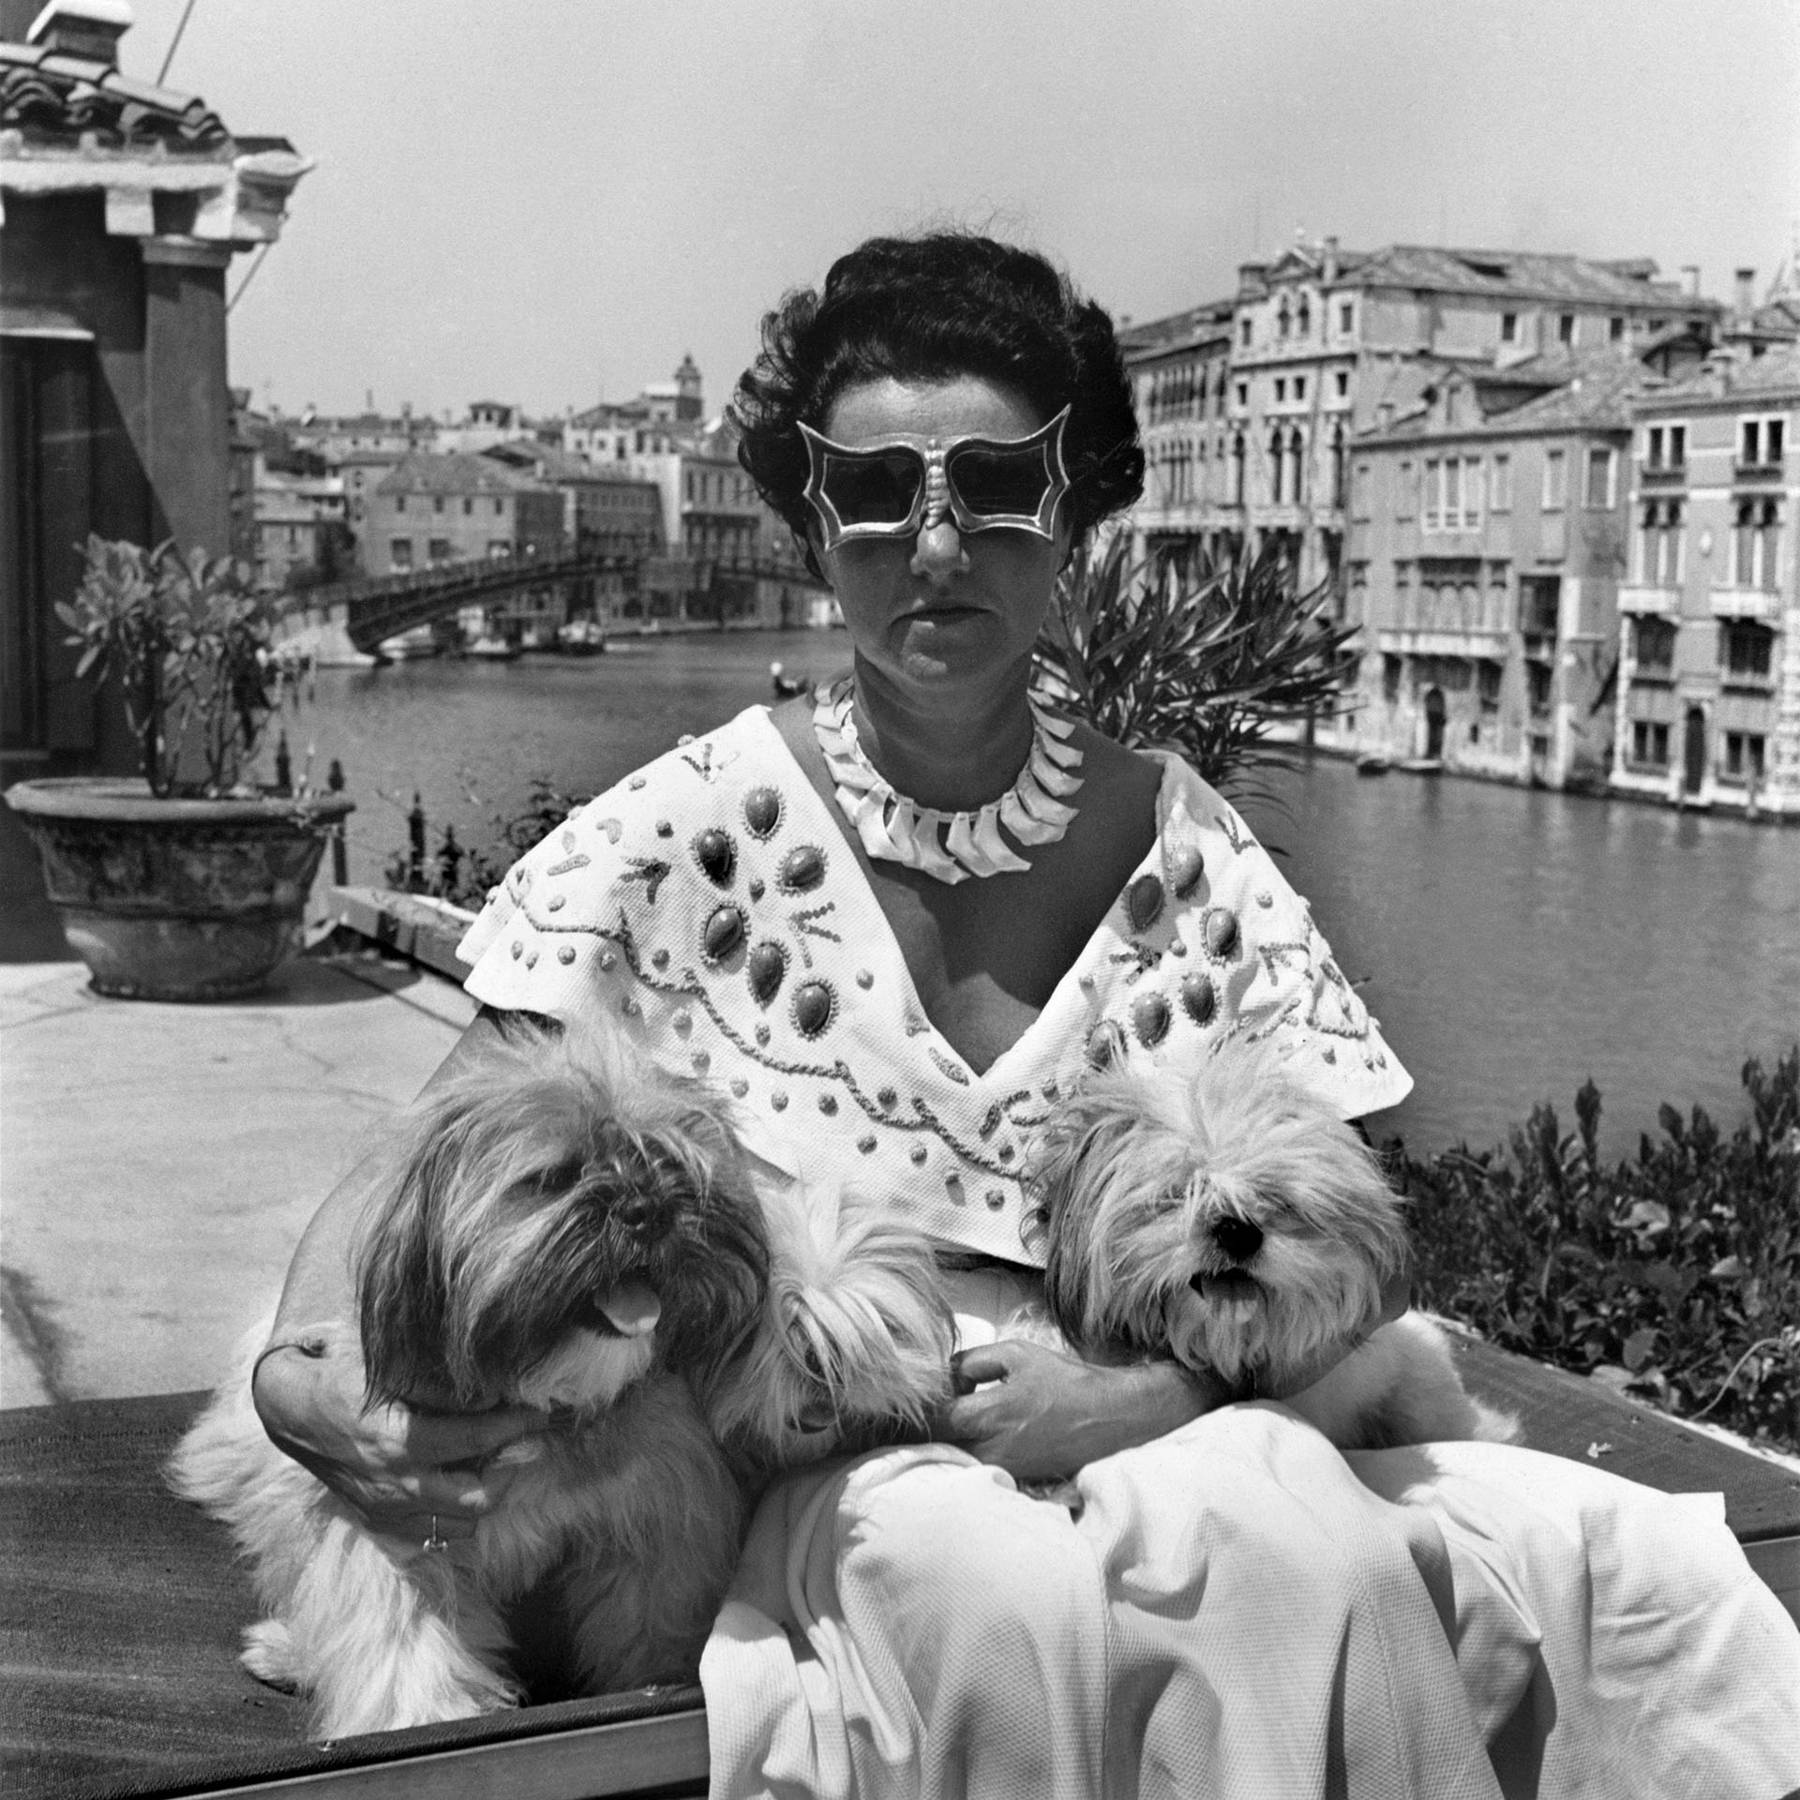 Guggenheim with her beloved pups and iconic sunglasses!